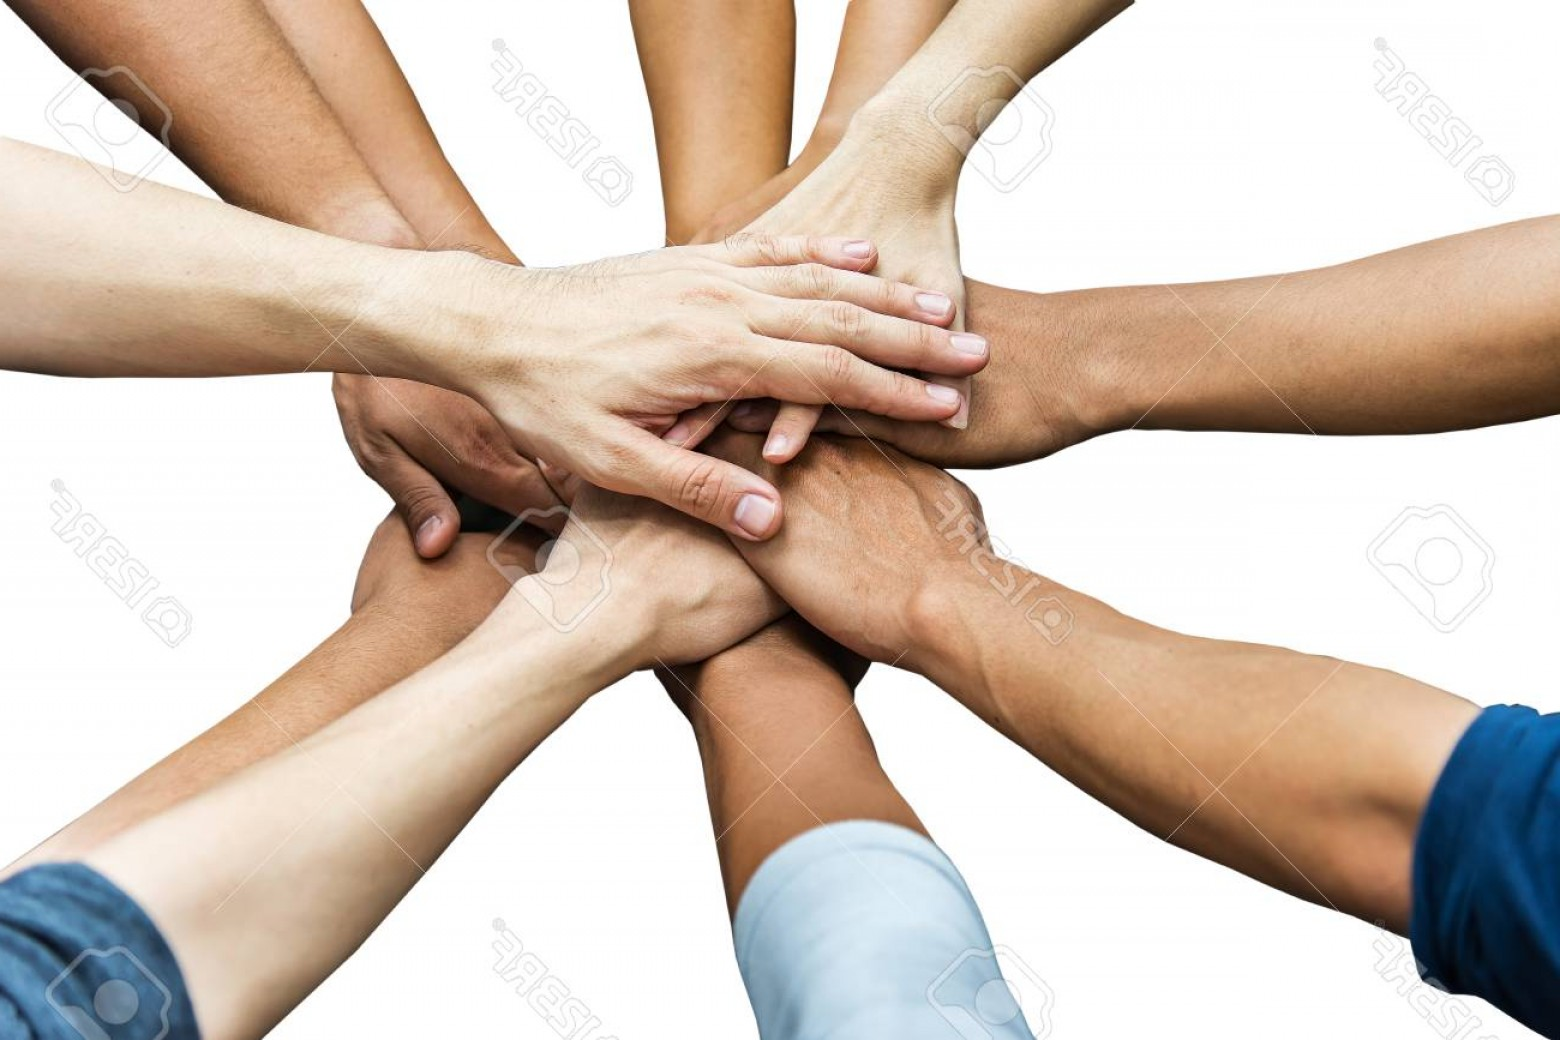 Vector Group Of Hands Overlapped: Photoimage Of Group Of Overlapping Hands Against White Background